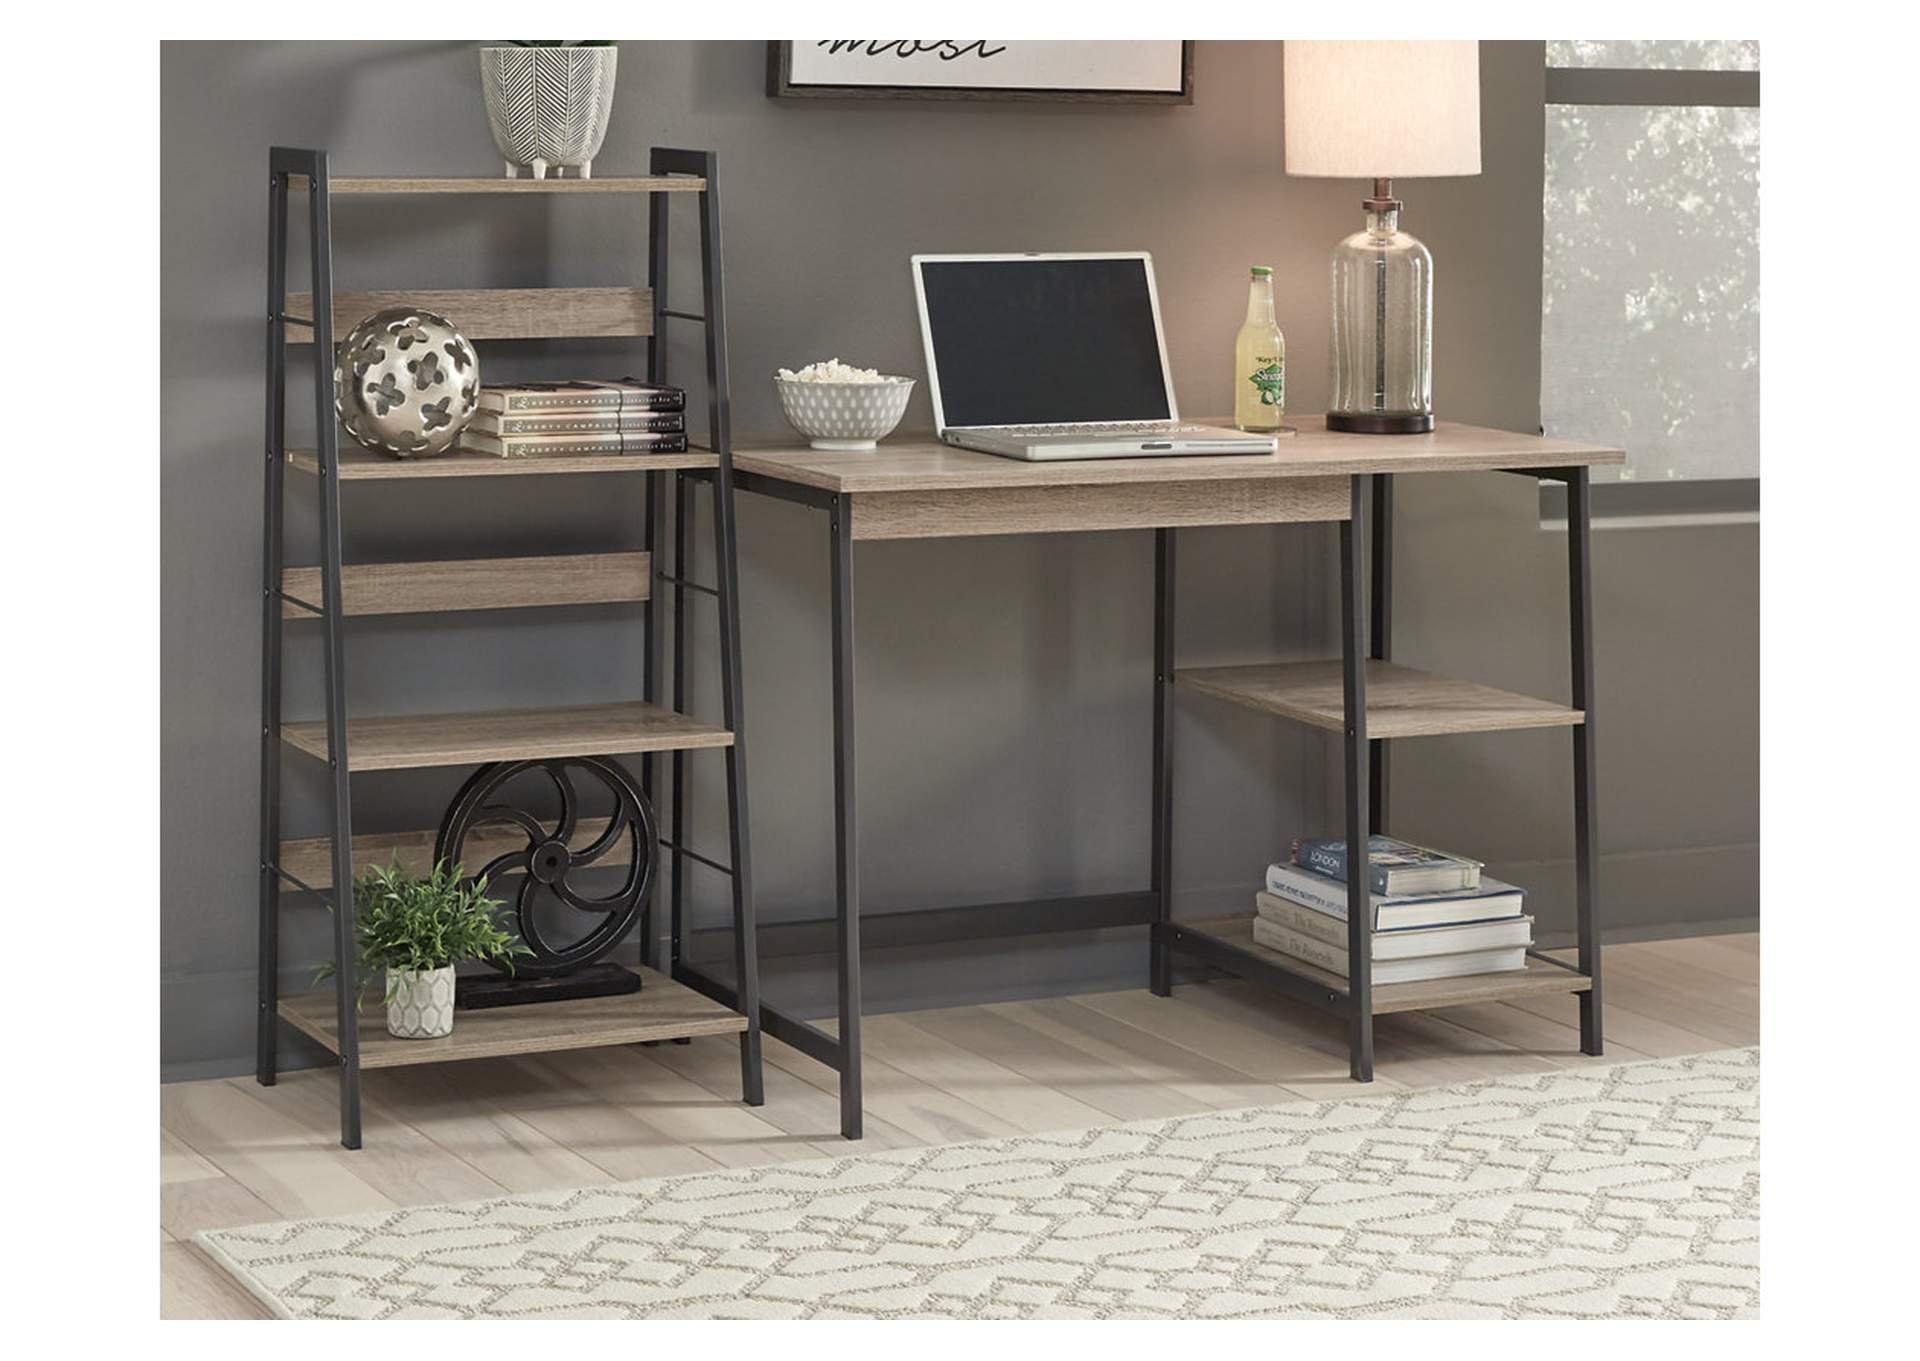 Soho Brown Black Home Office Desk And Shelf Ivan Smith